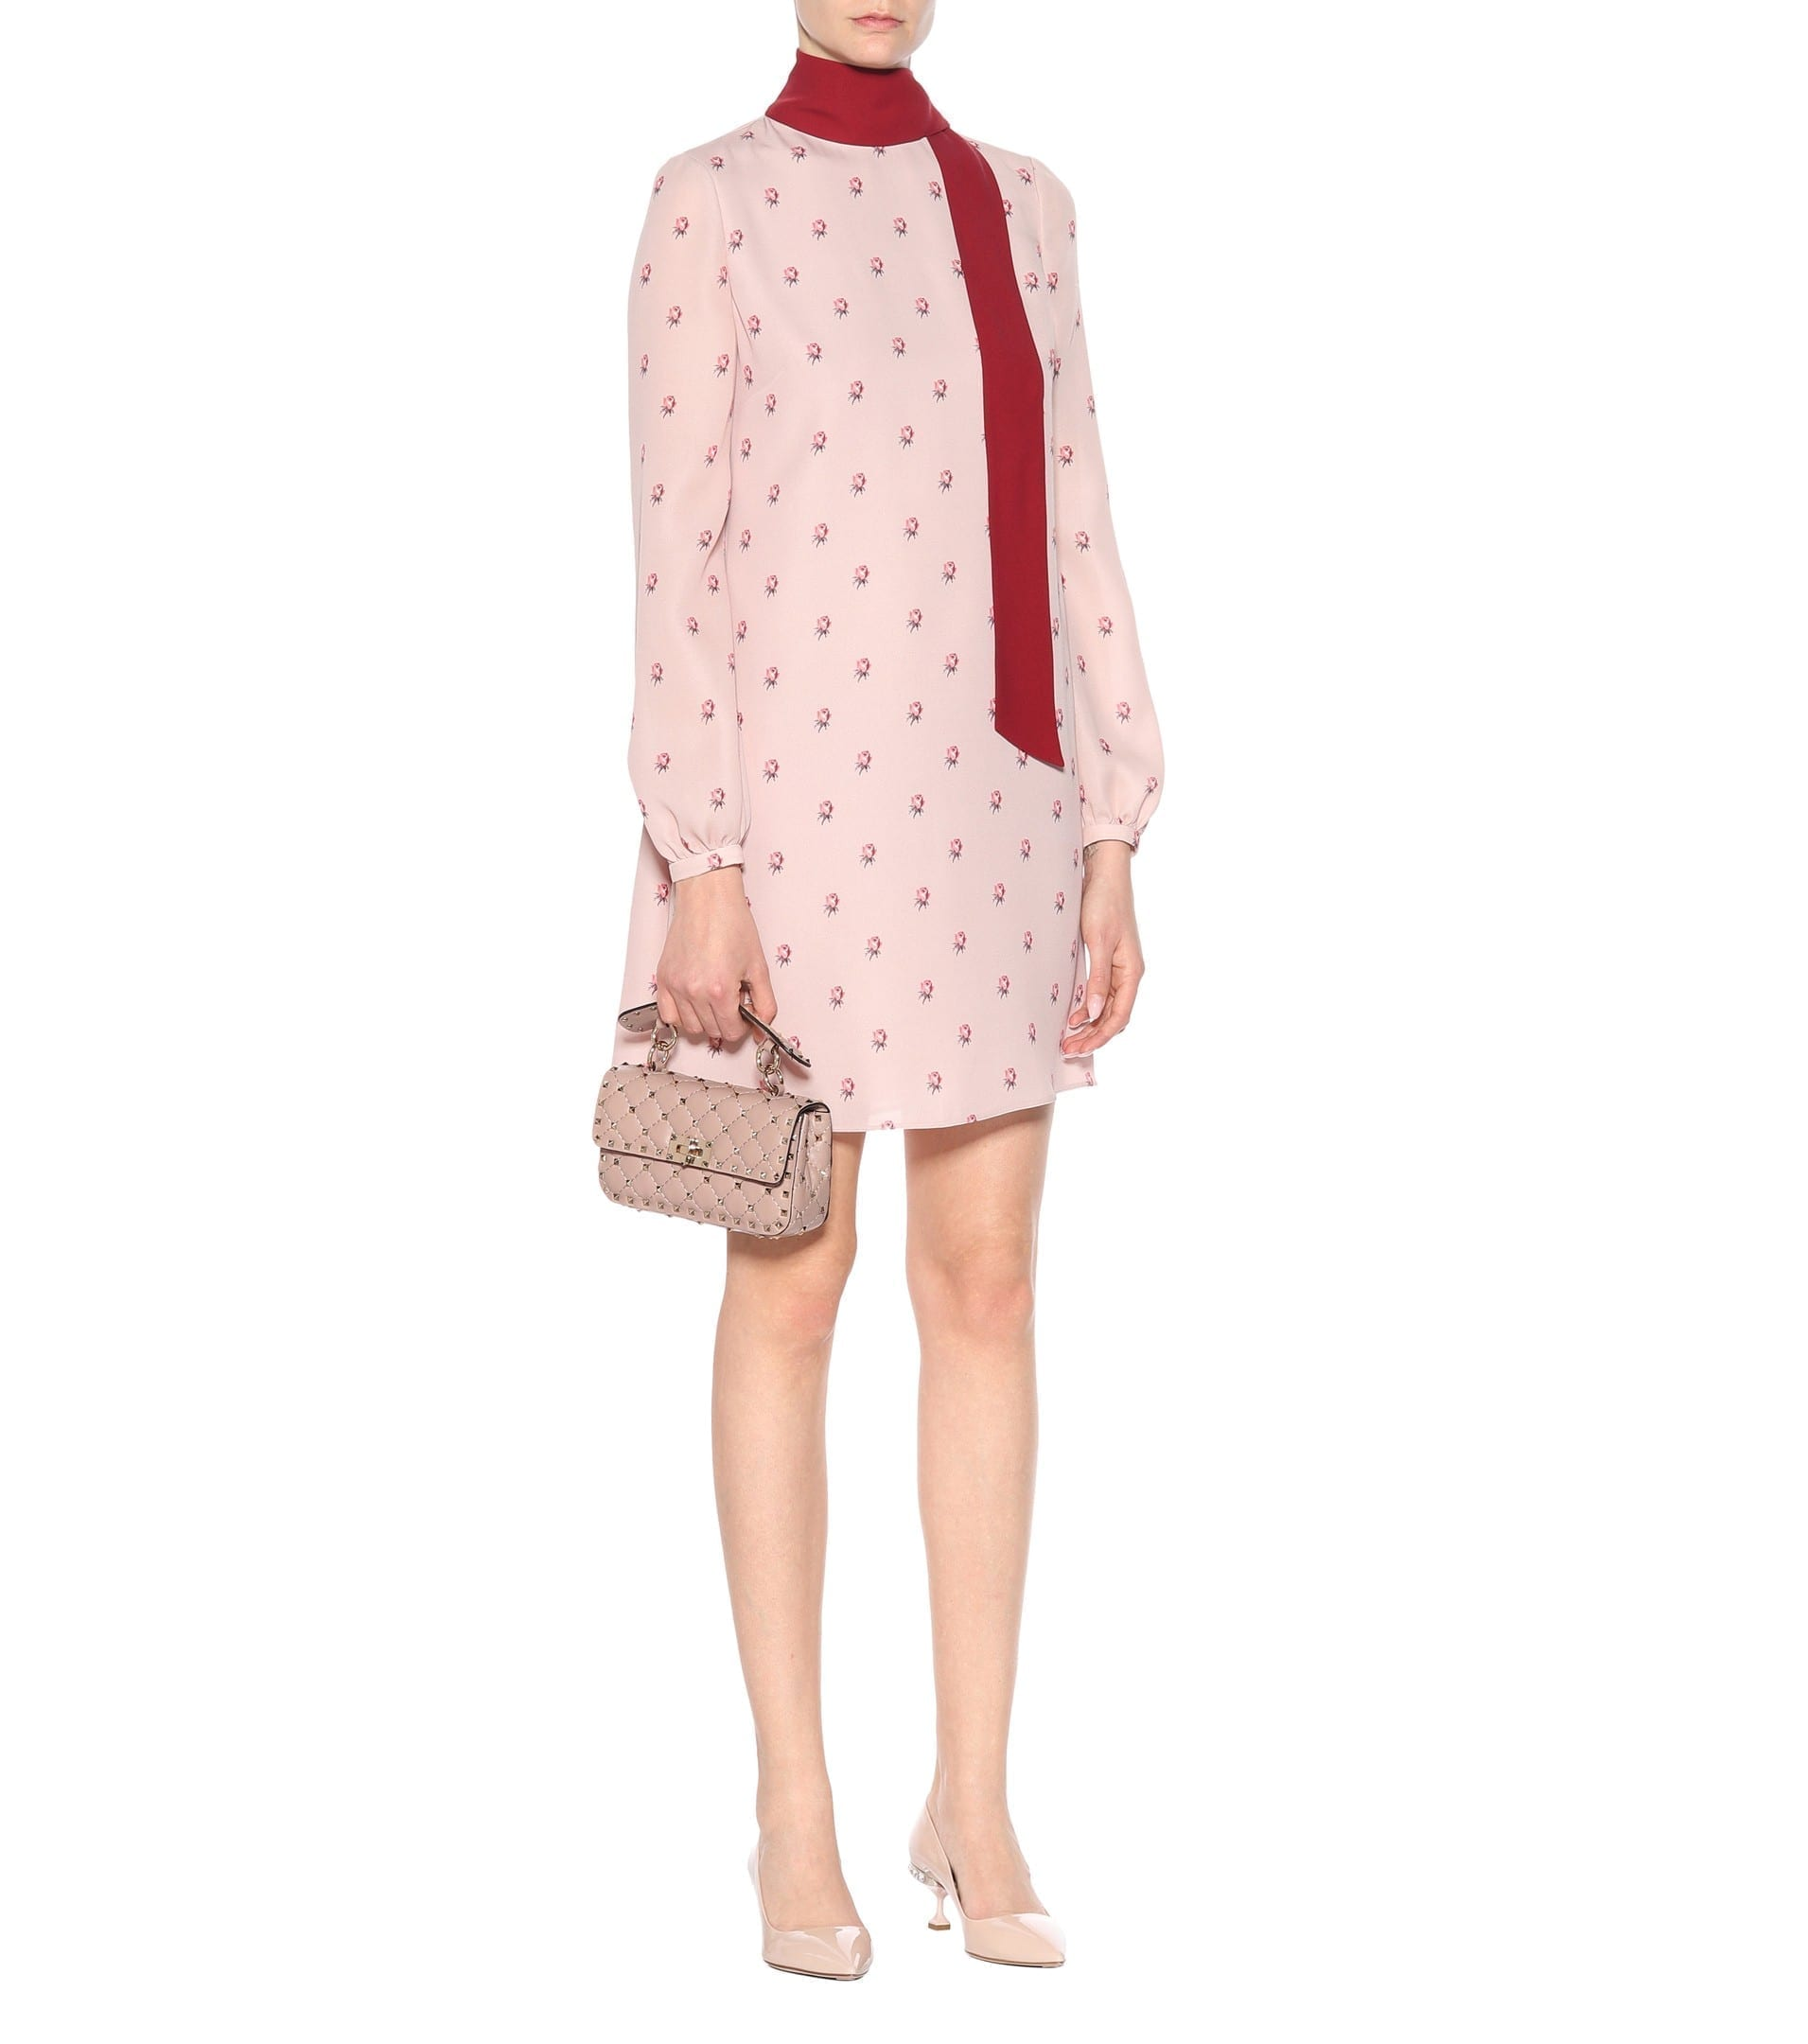 VALENTINO Printed Silk Scarf Poudre Pink Dress